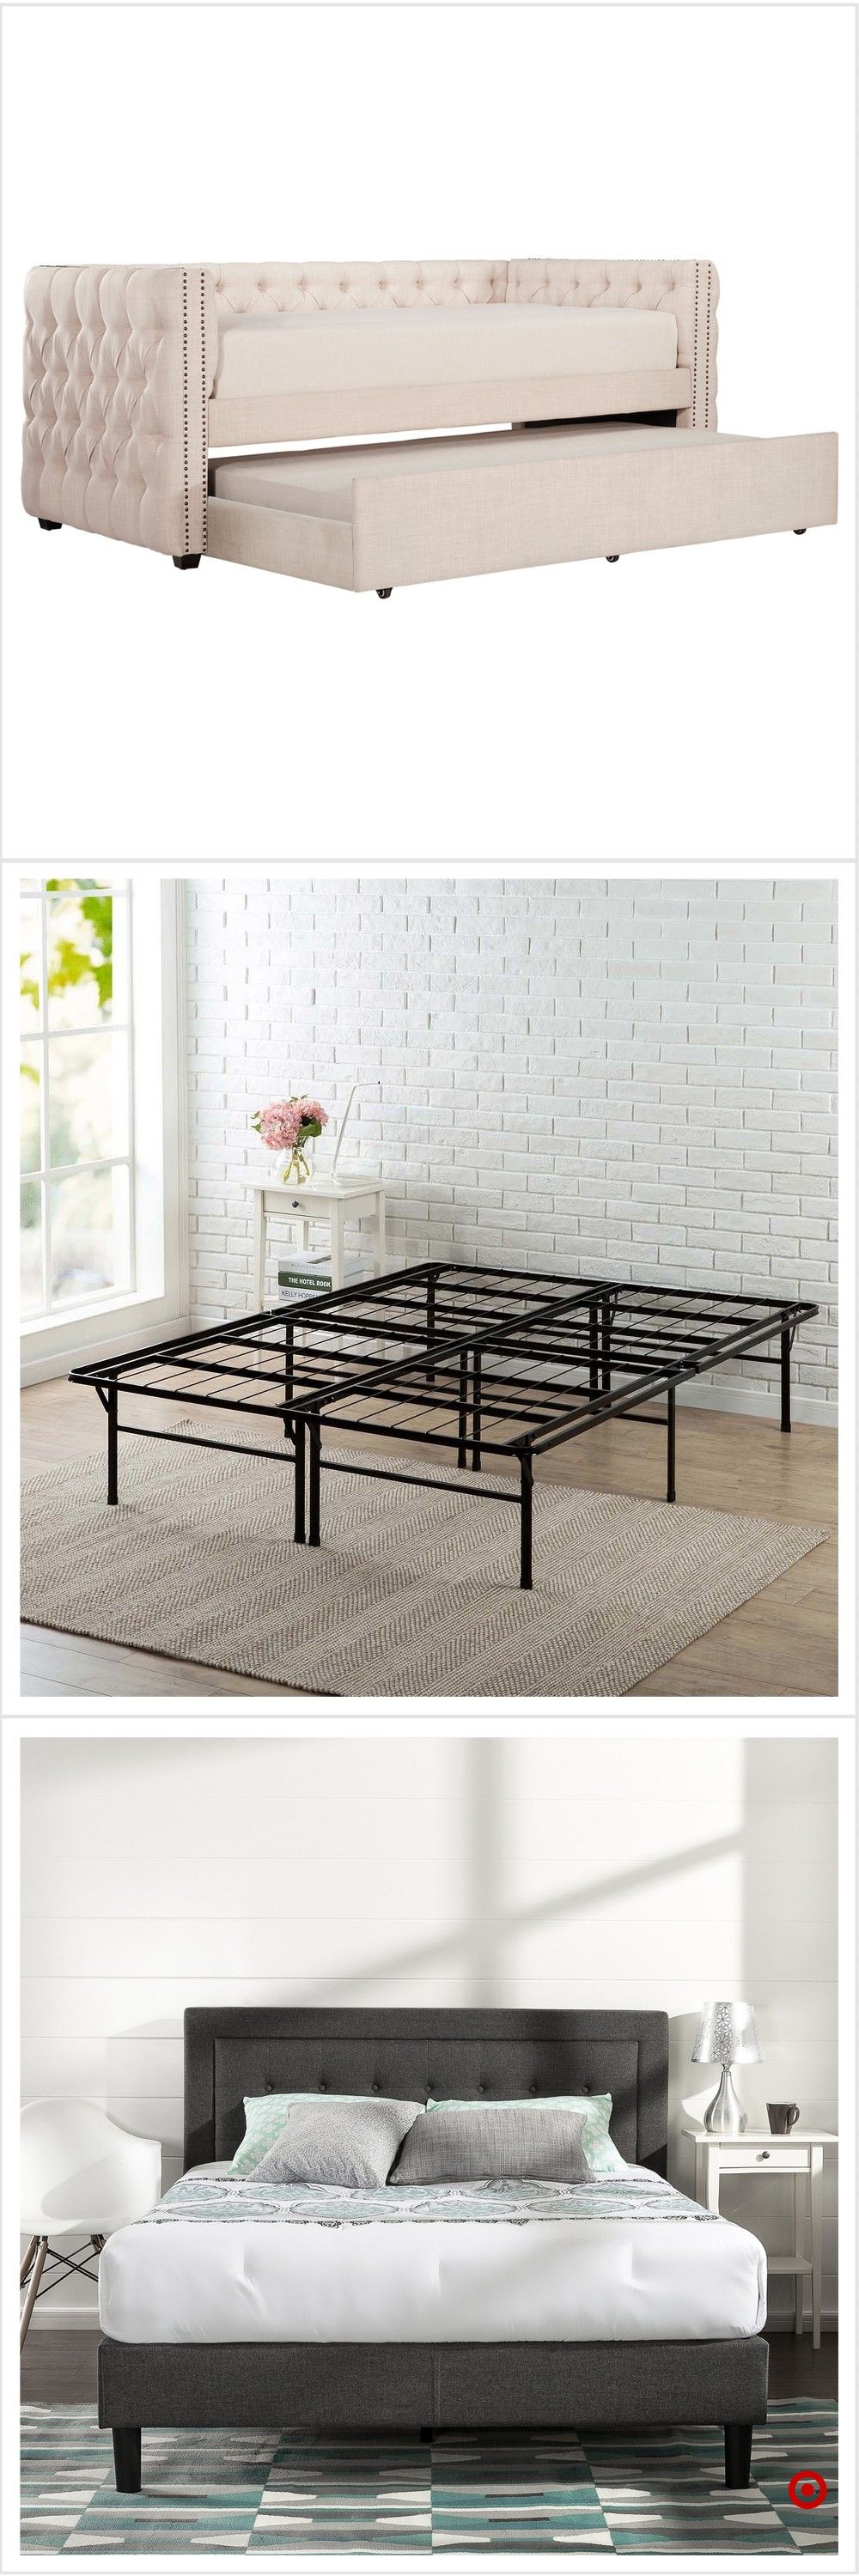 Shop Target For Roll Away Bed You Will Love At Great Low